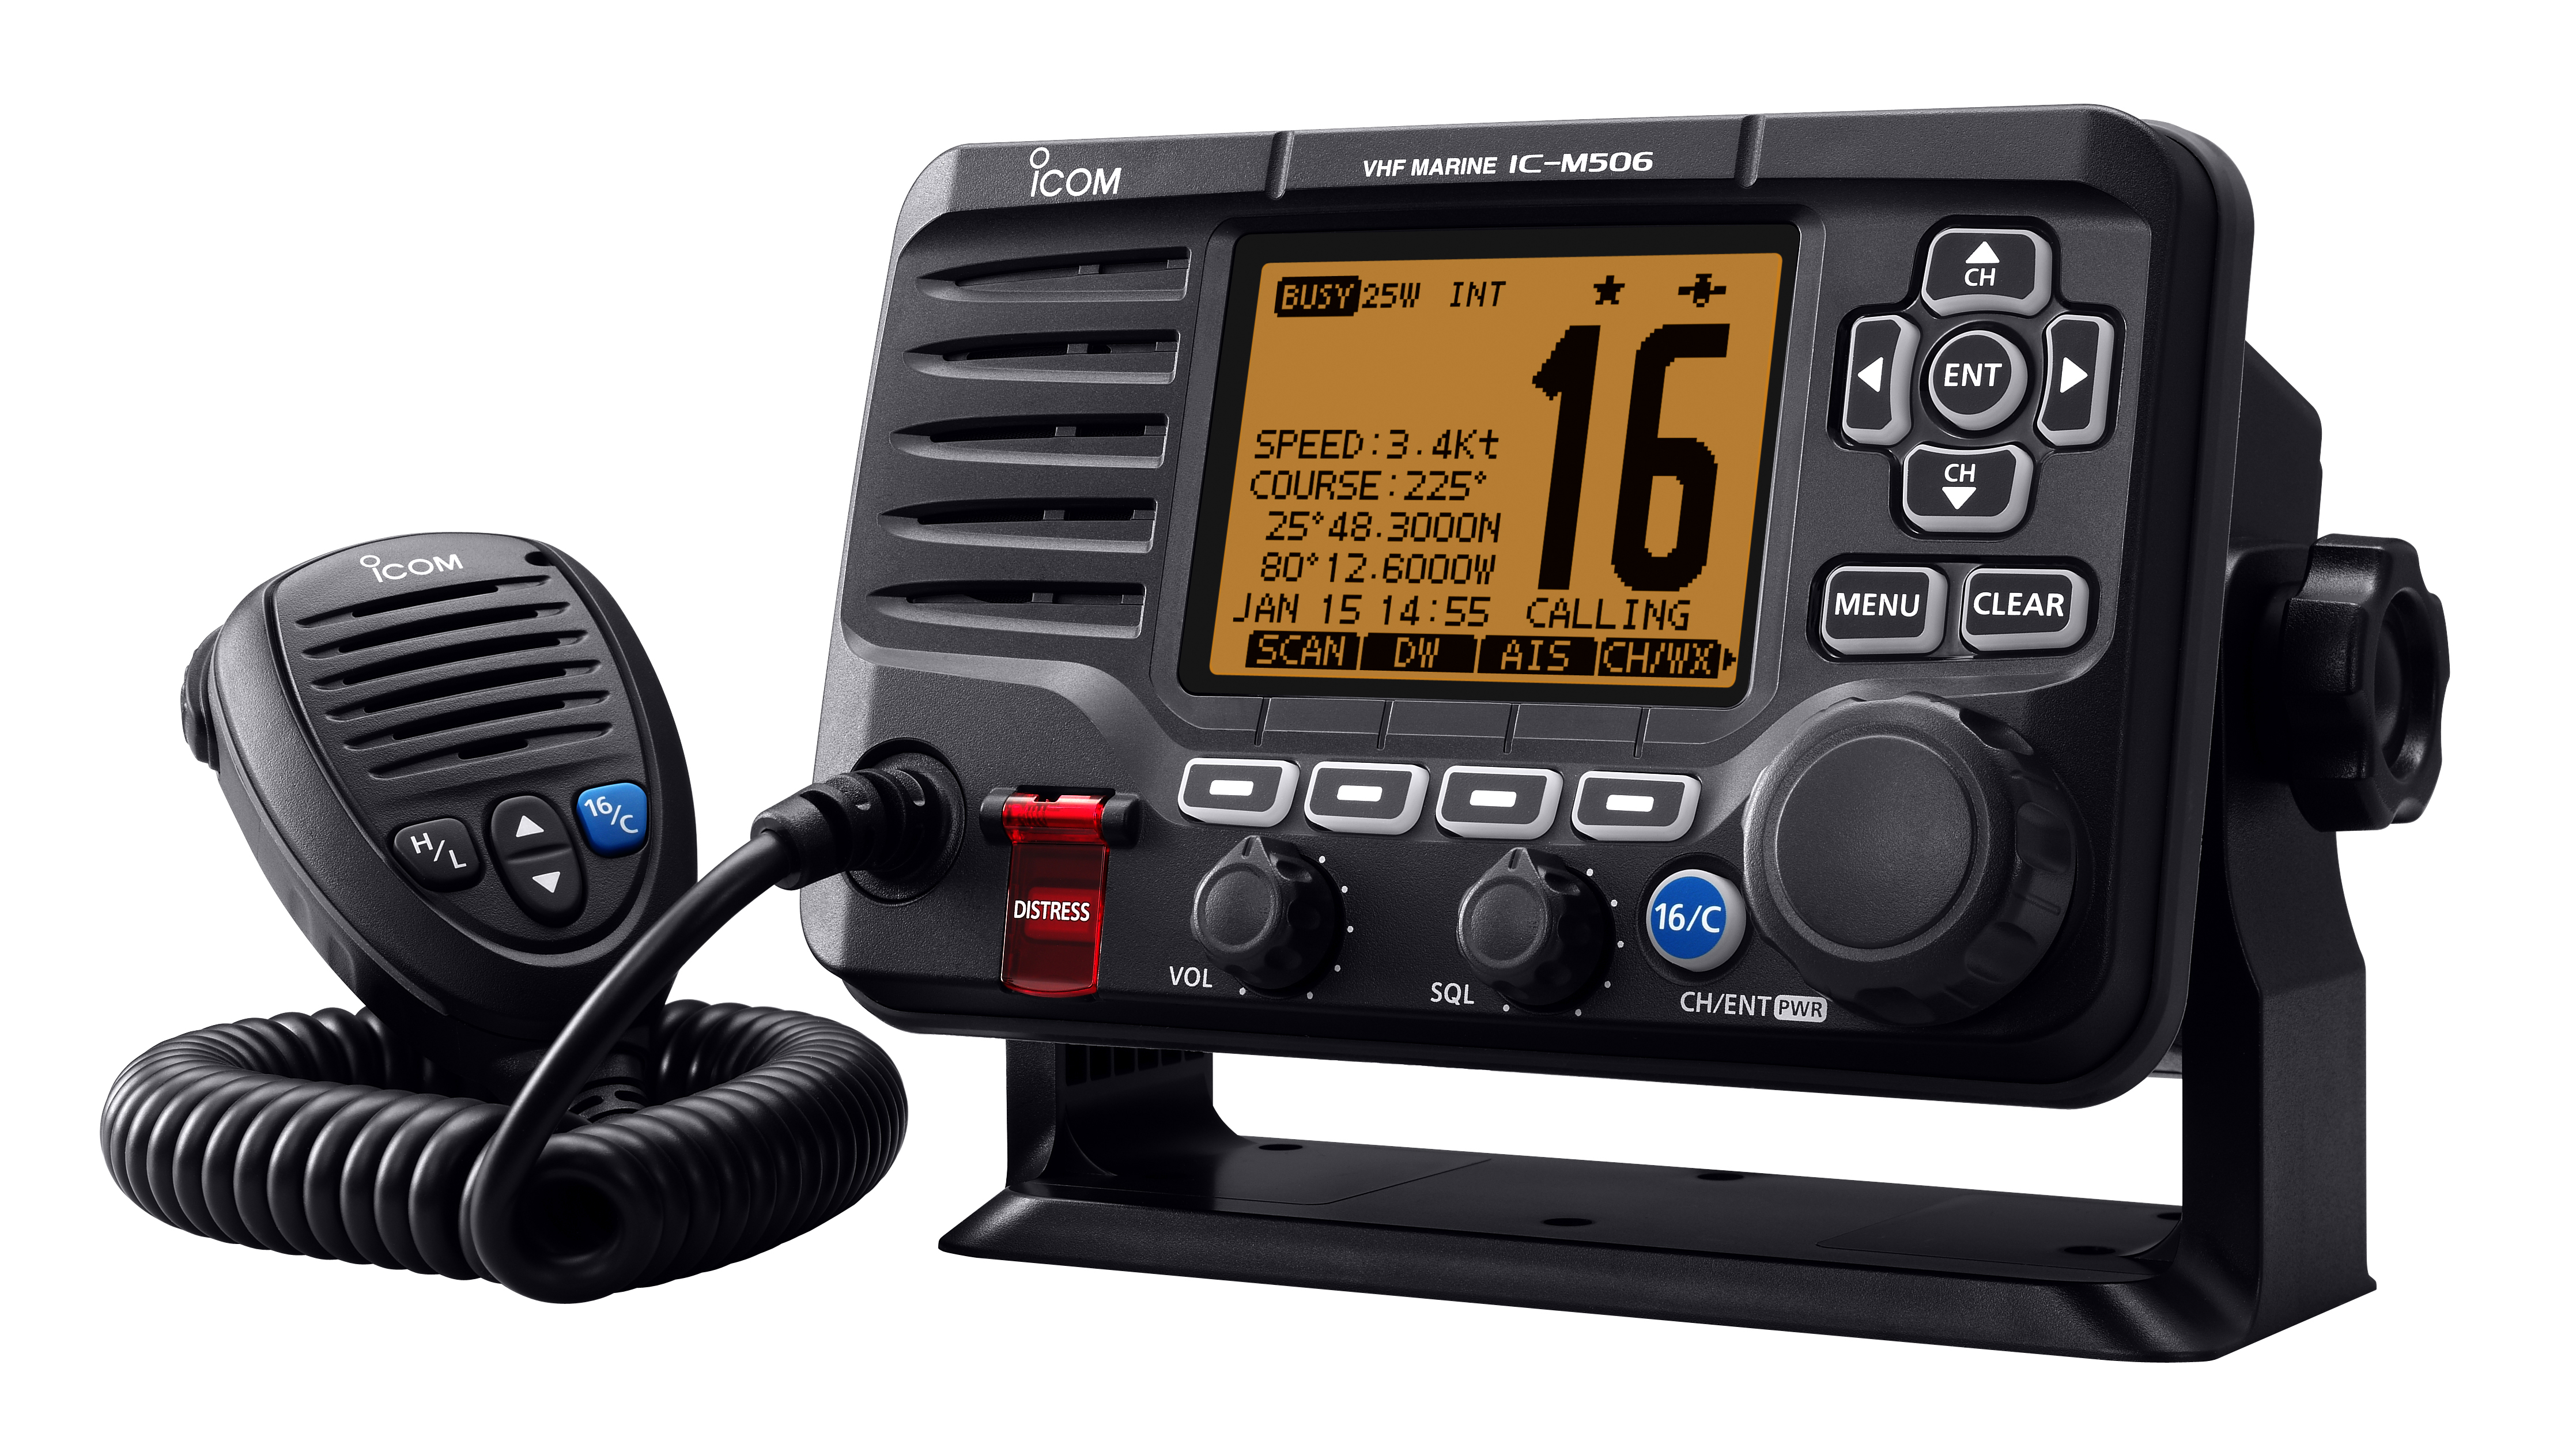 IC-M506GE VHF/DSC marine transceiver with NMEA 2000 connectivity and AIS receiver (Side)